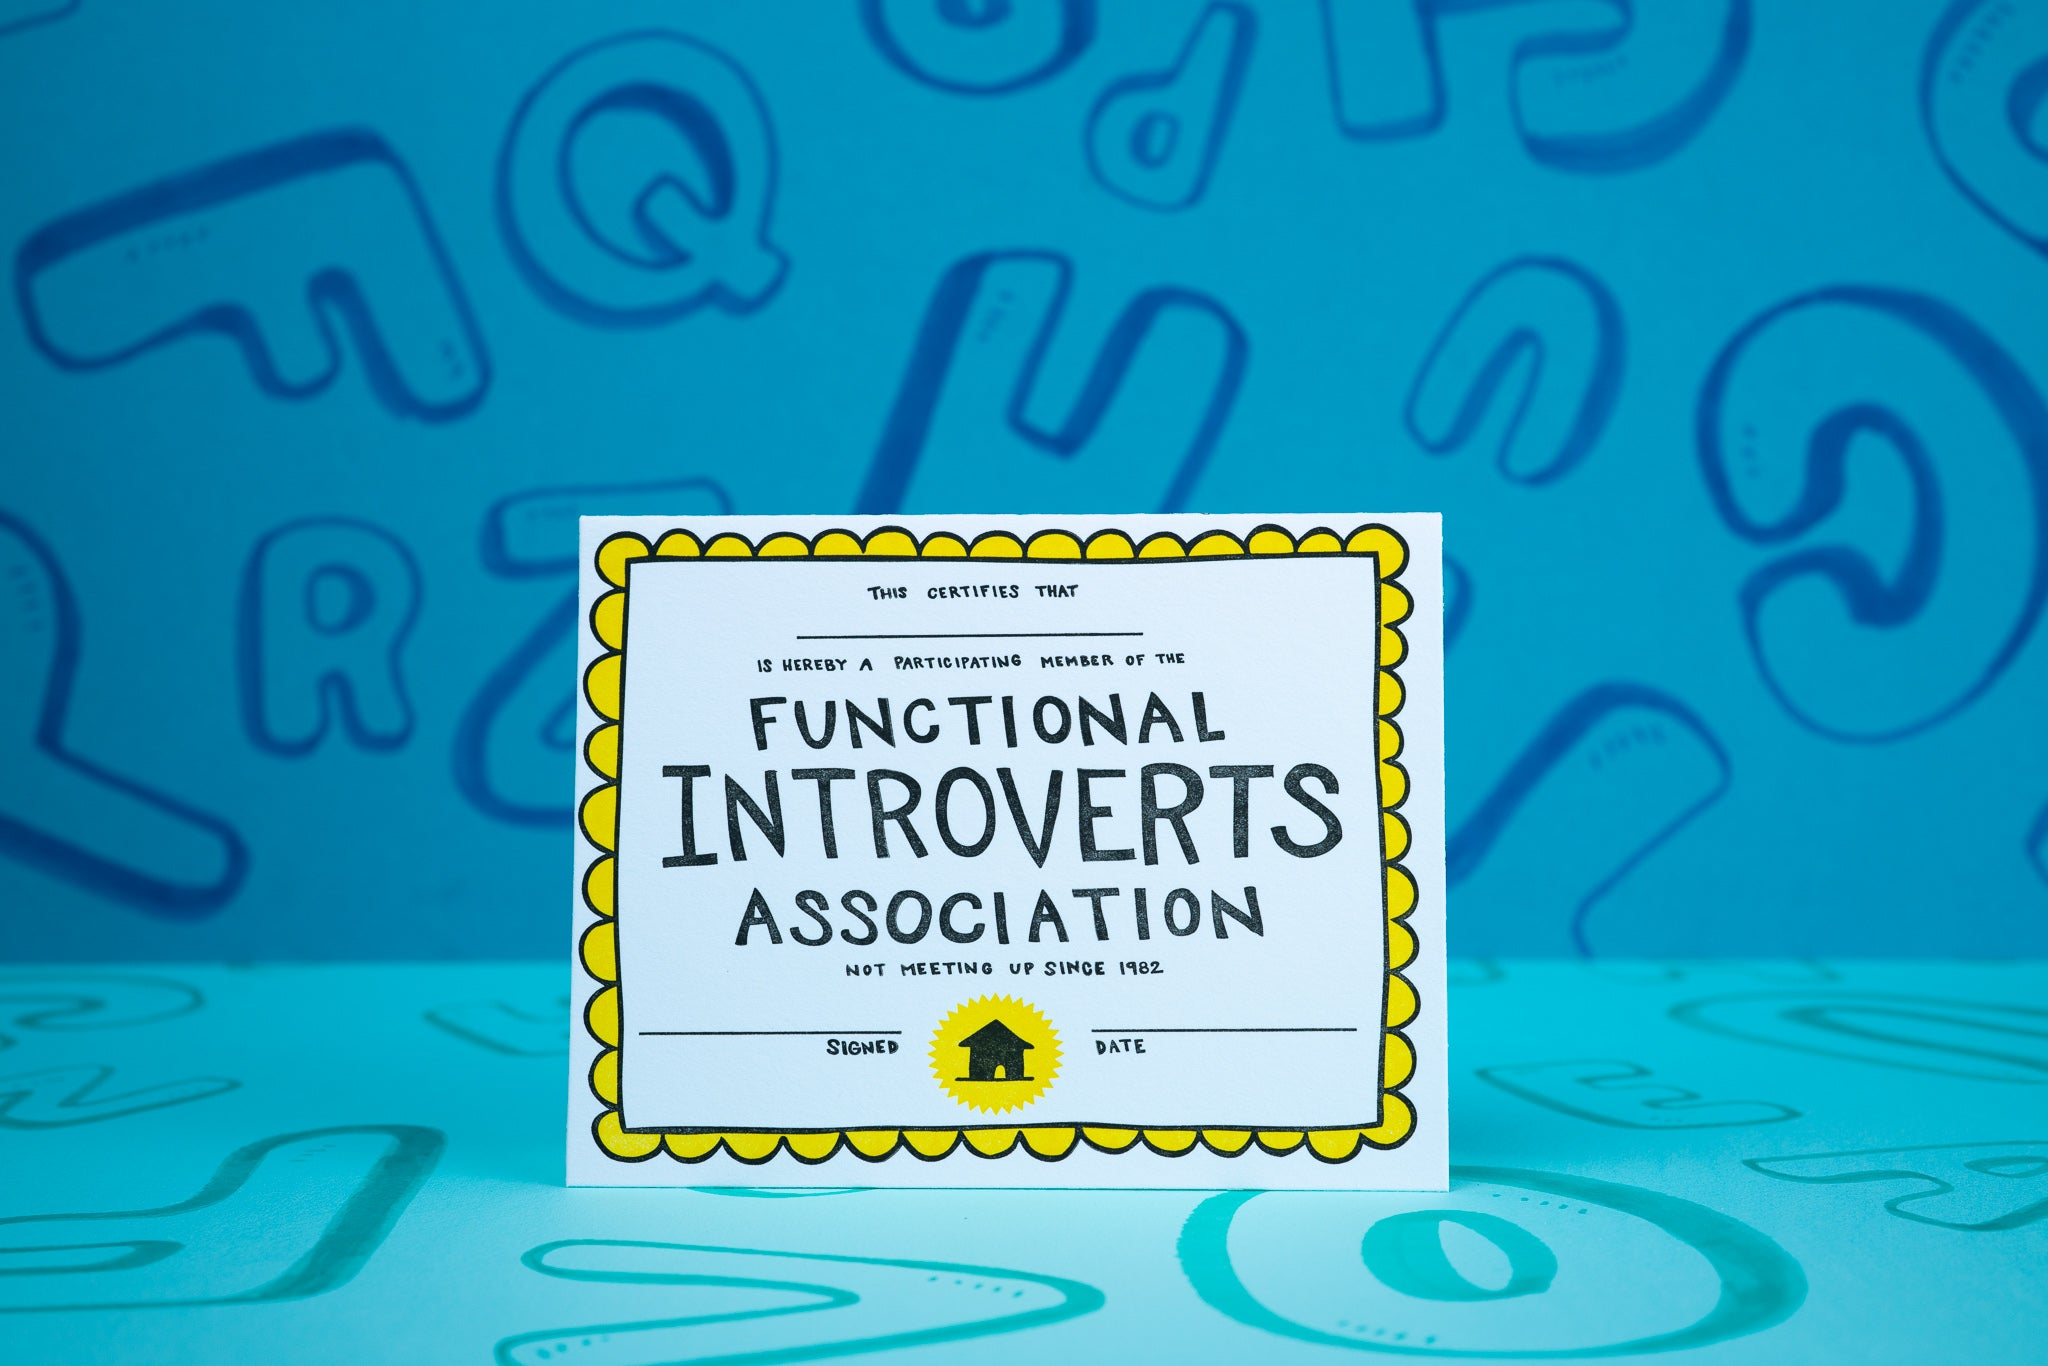 Functional Introverts Association Certificate